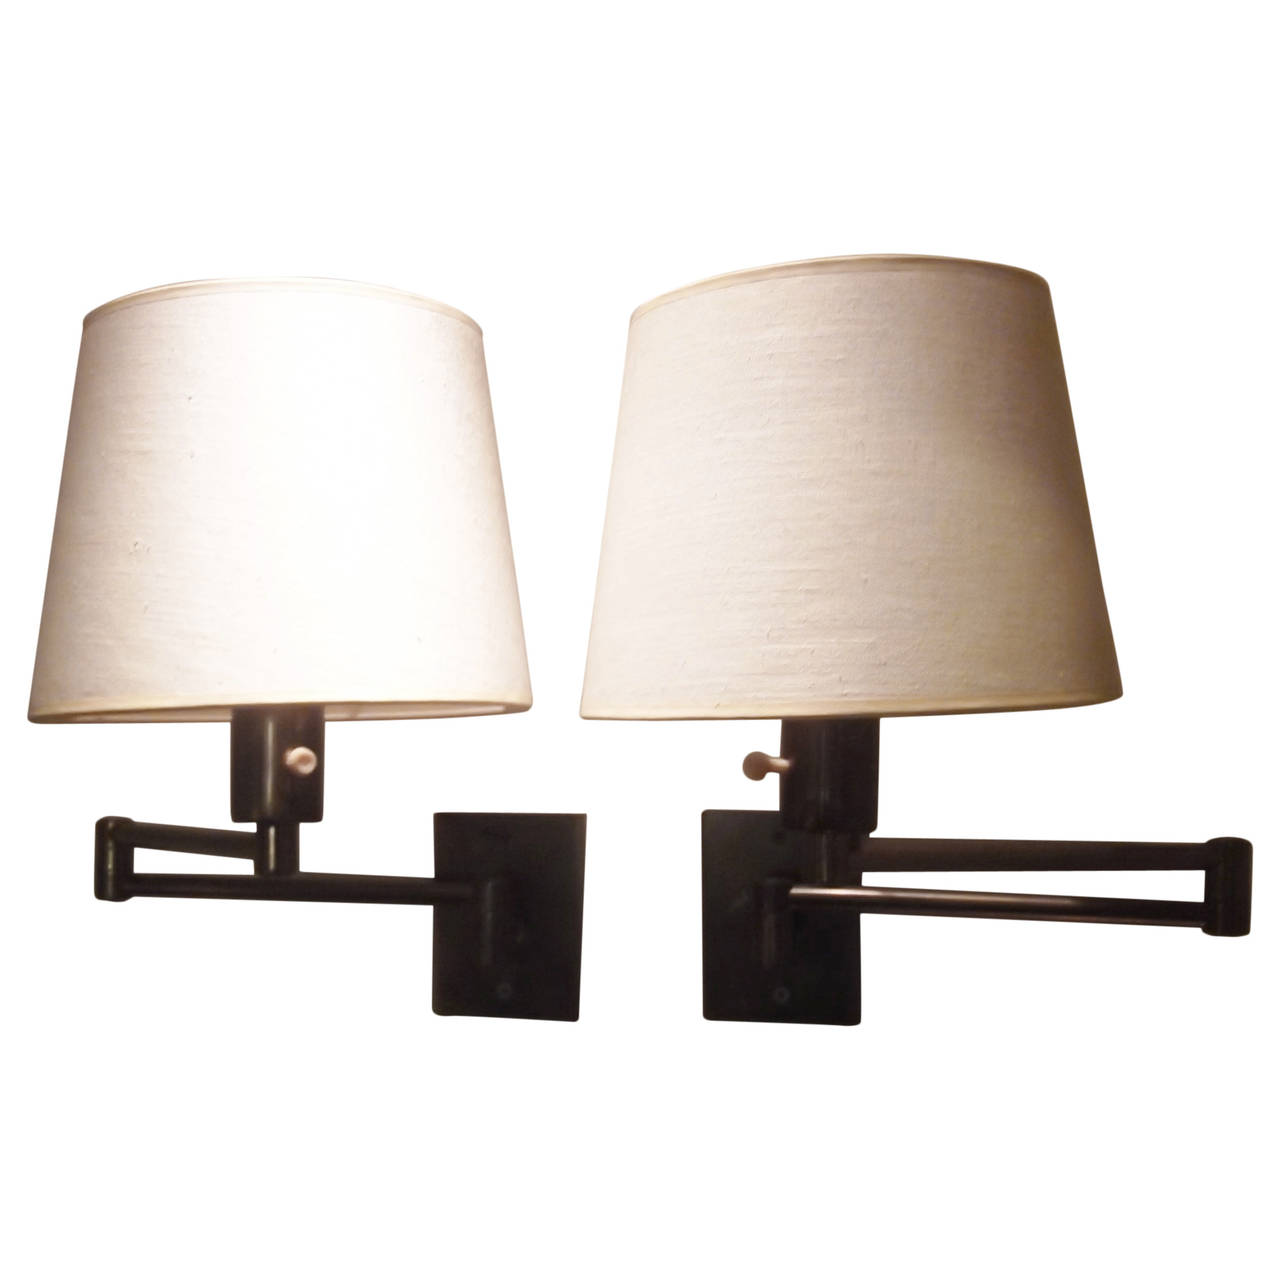 wall mounted swing arm lamps photo - 10